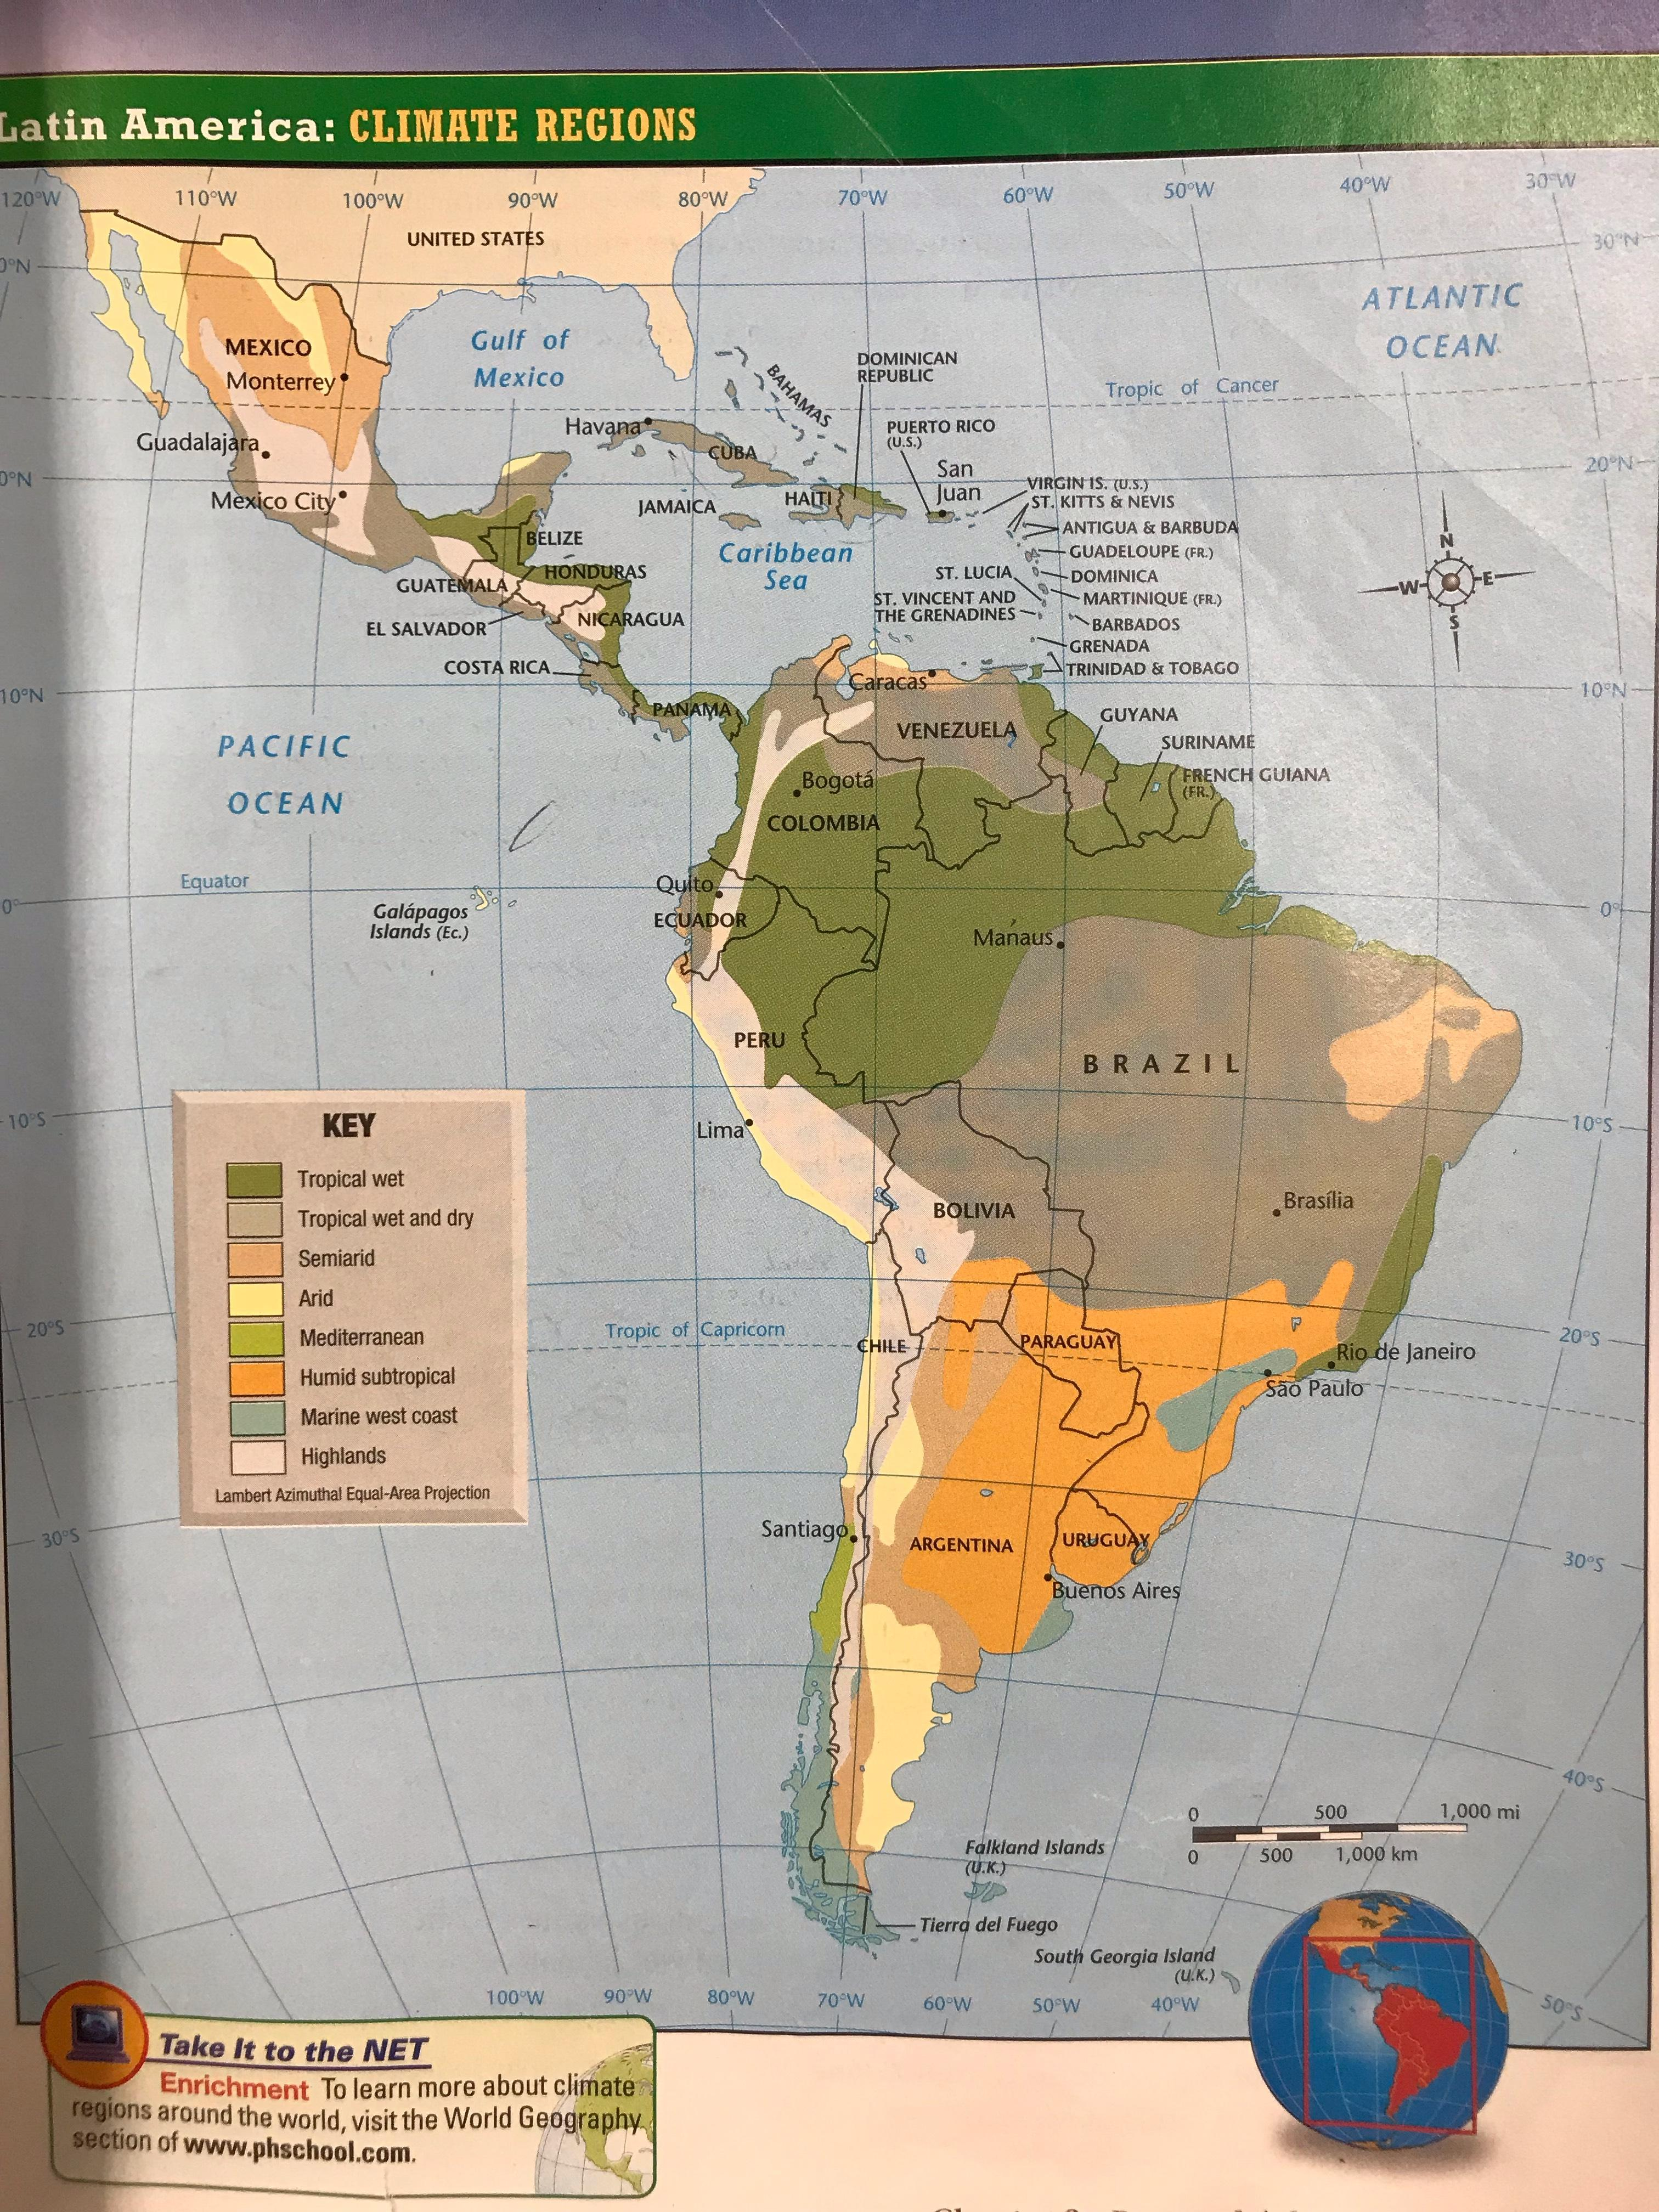 World Geography Doents – Ryan Fritsche – Tomball Memorial High on social studies world geography, 10th grade world geography, second grade world geography, middle school world geography, 6th grade world geography, grade 6 world geography,